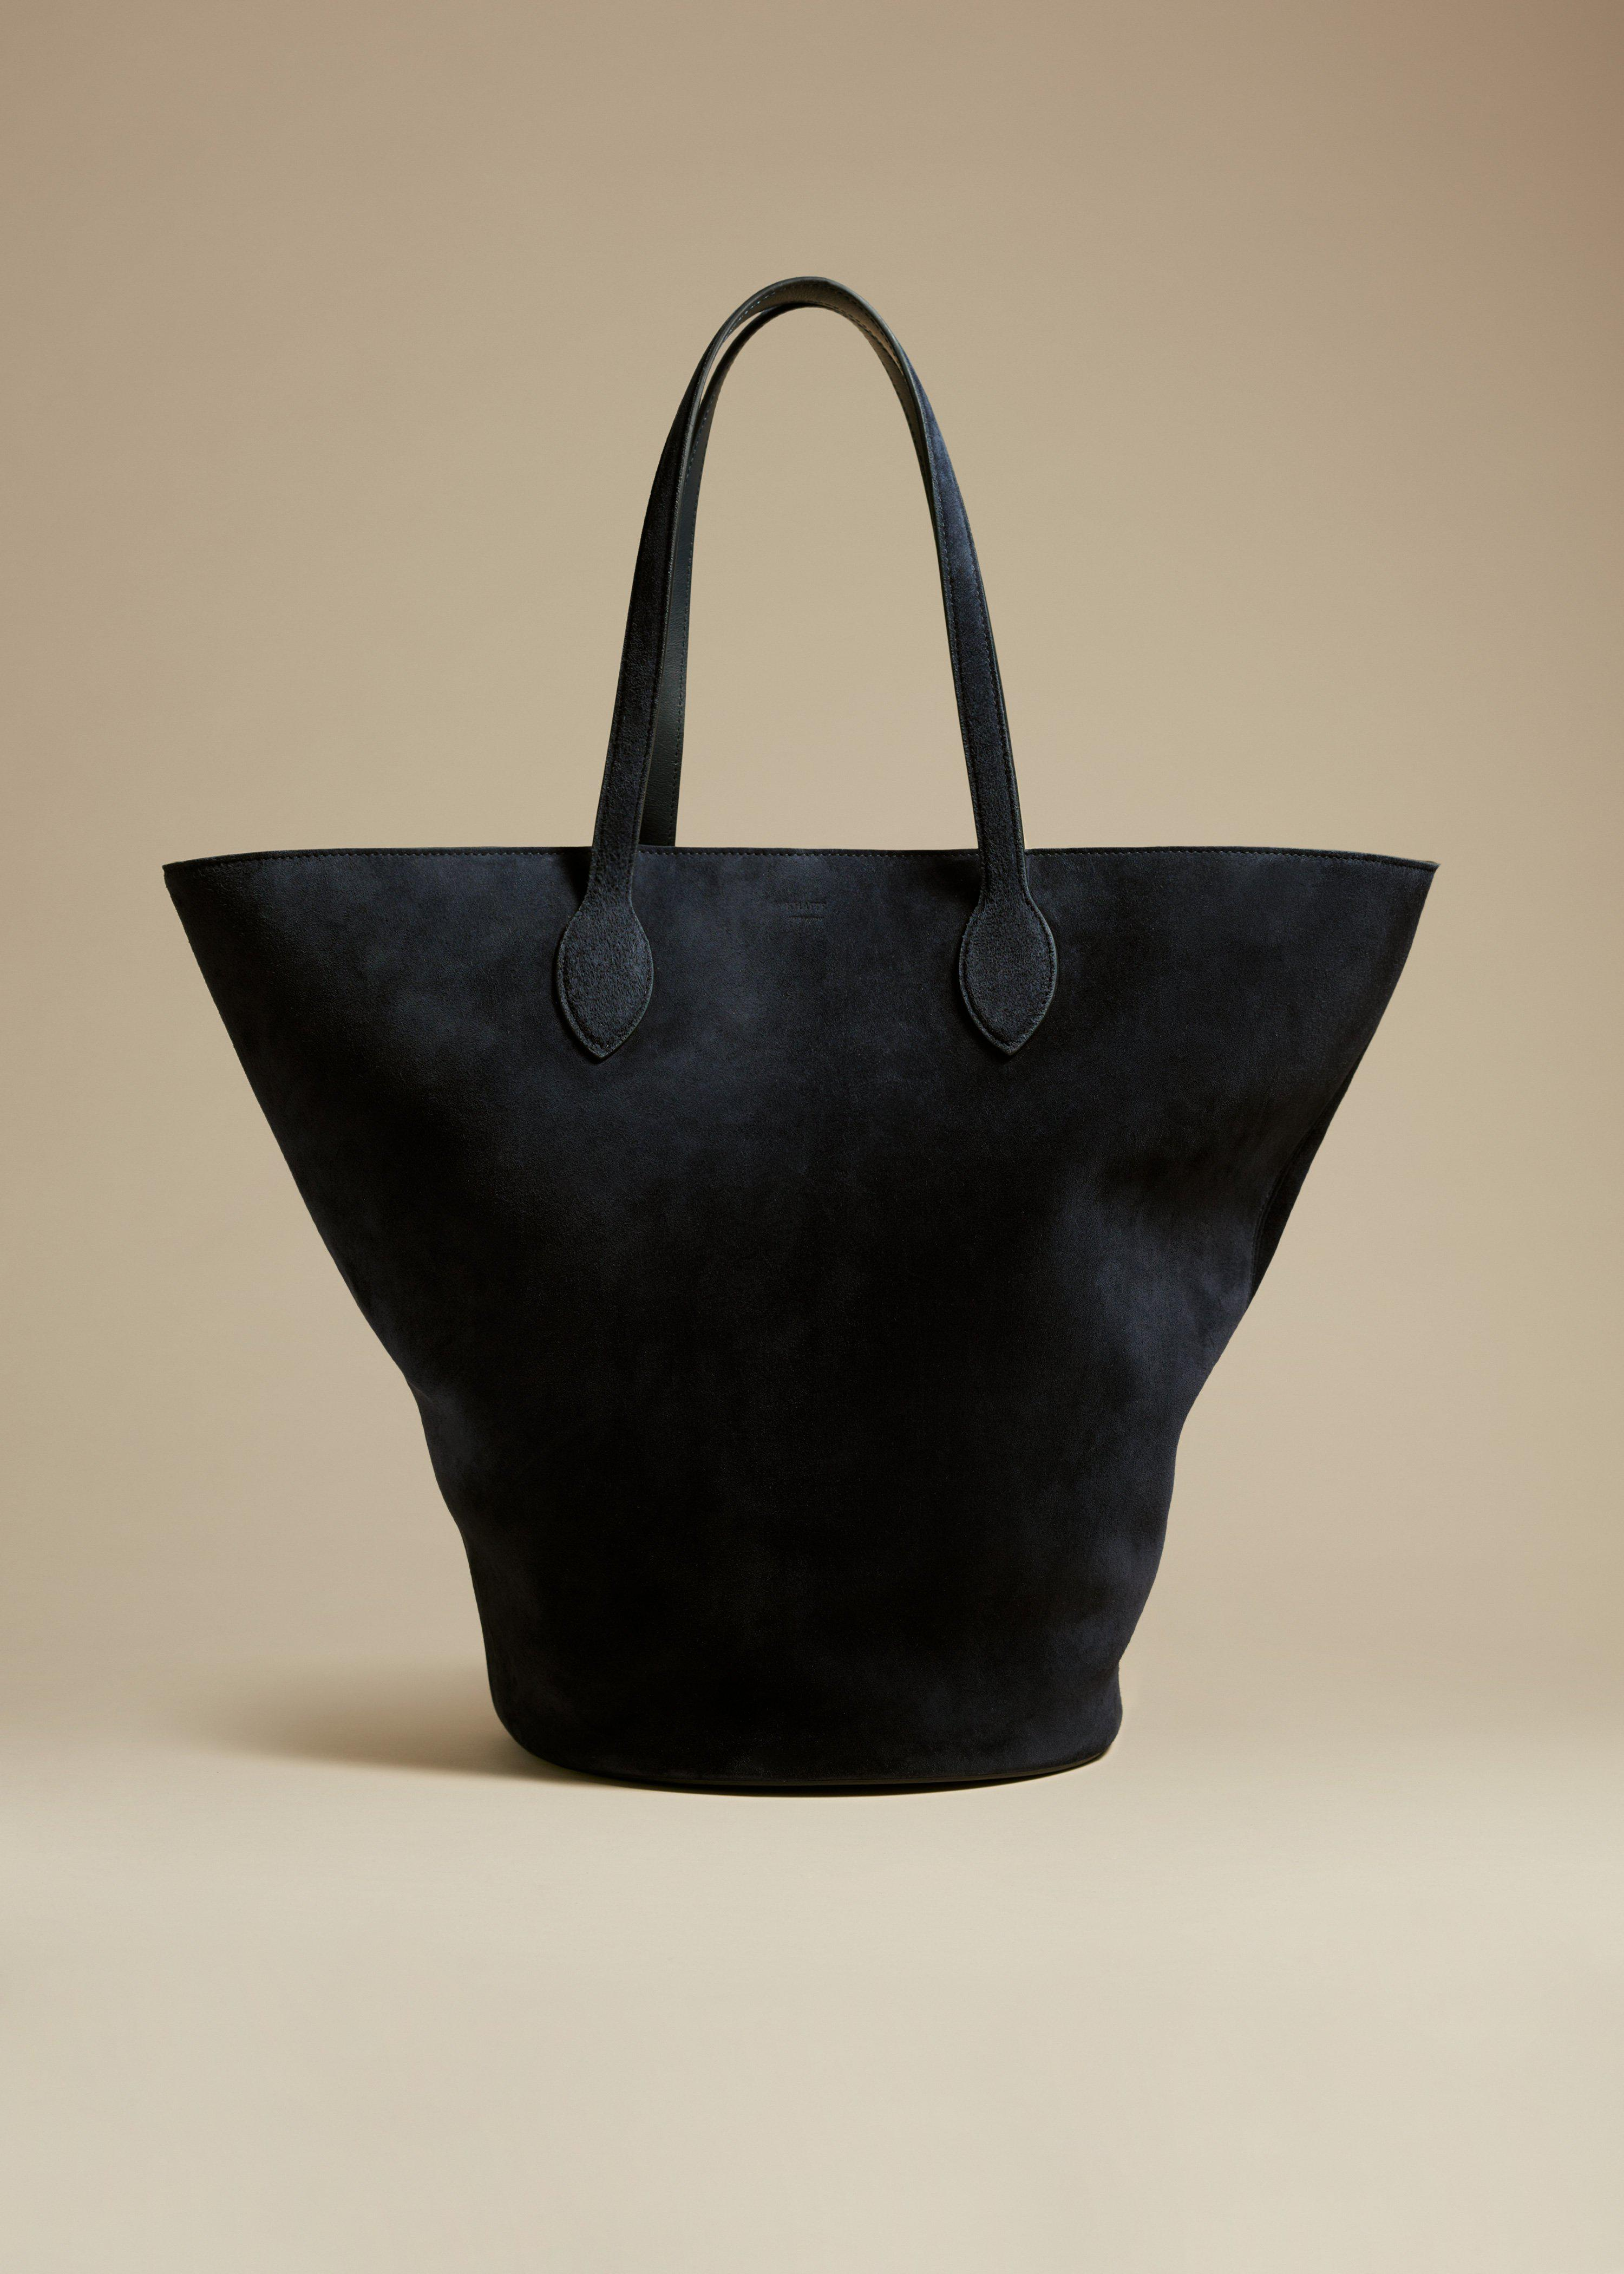 The Medium Osa Tote in Navy Suede